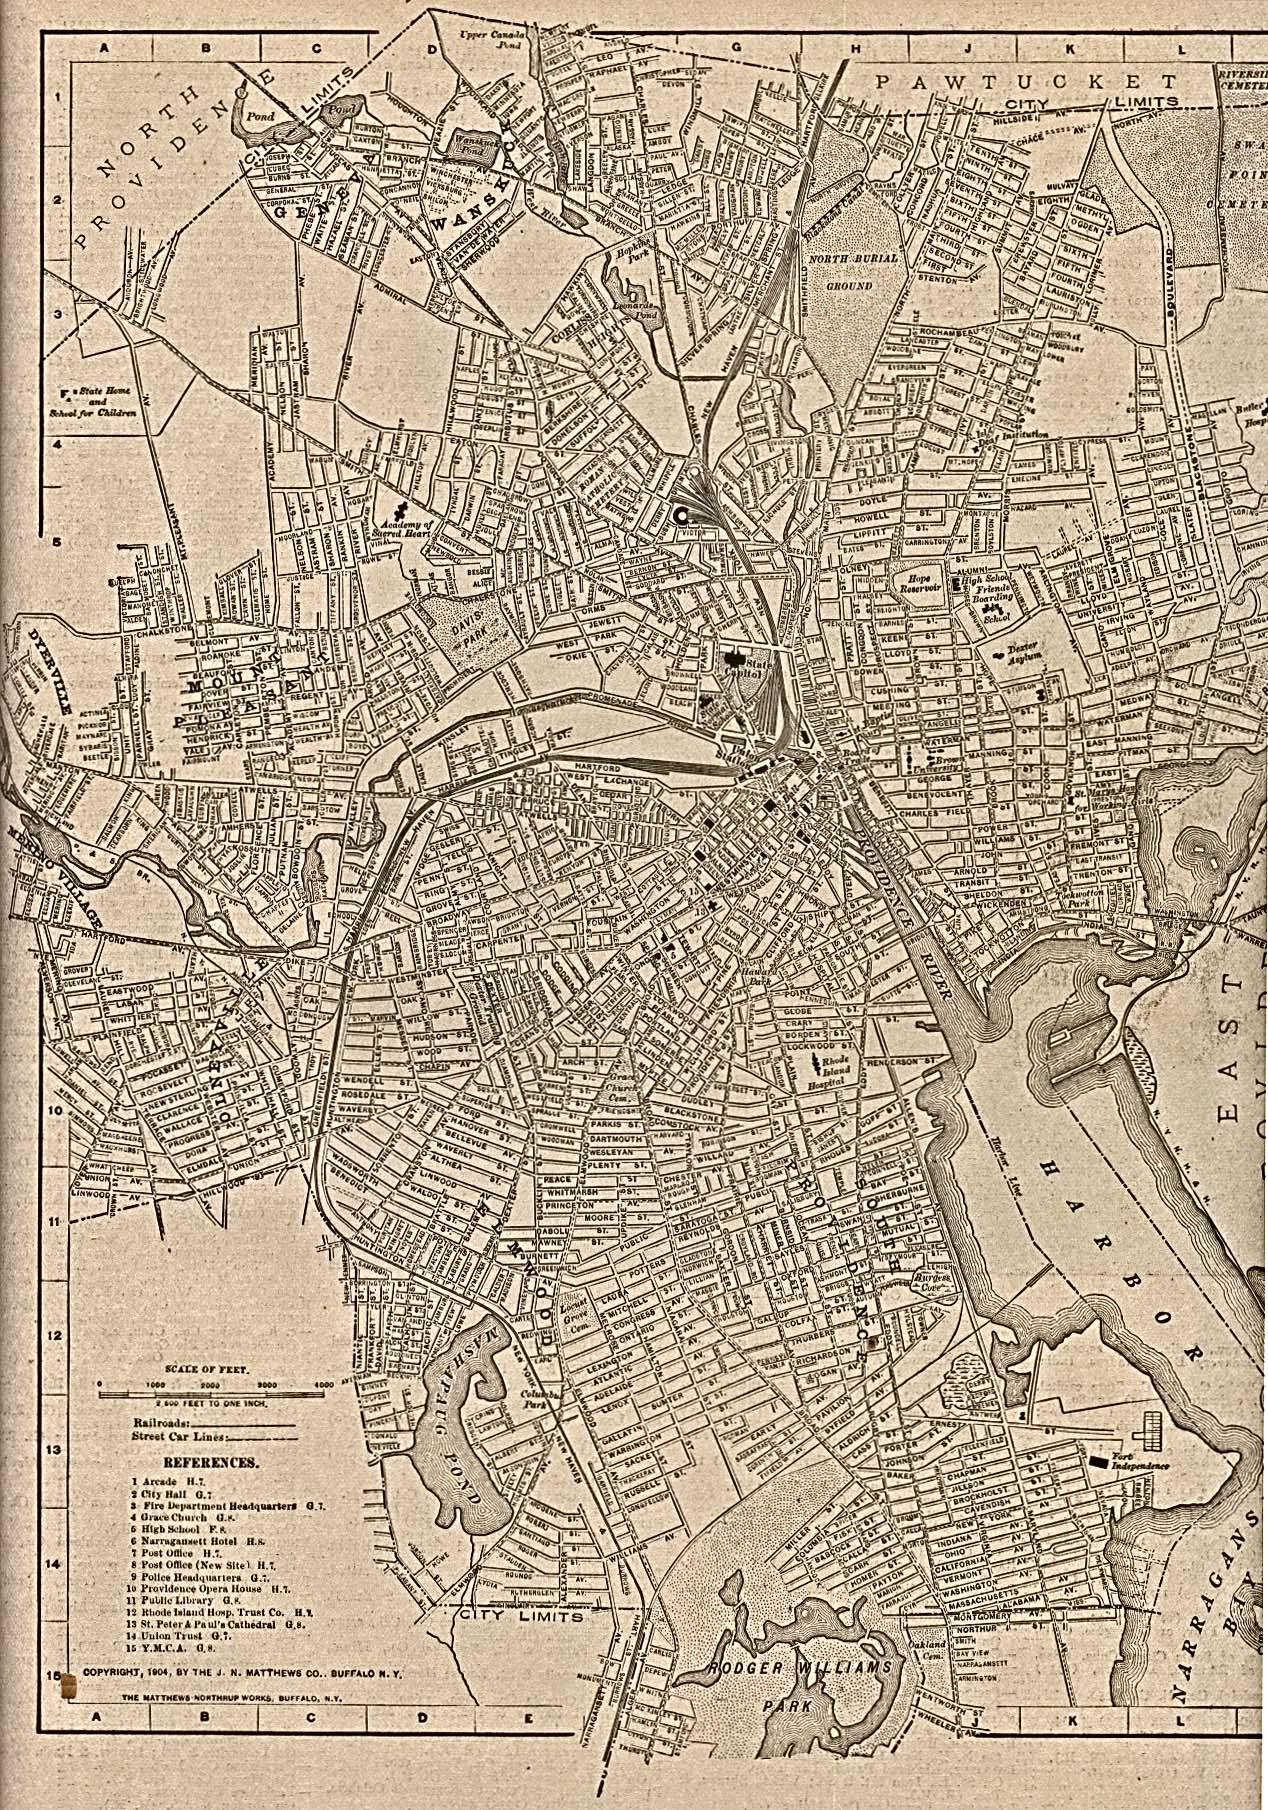 Providence City Map, Rhode Island, United States 1917